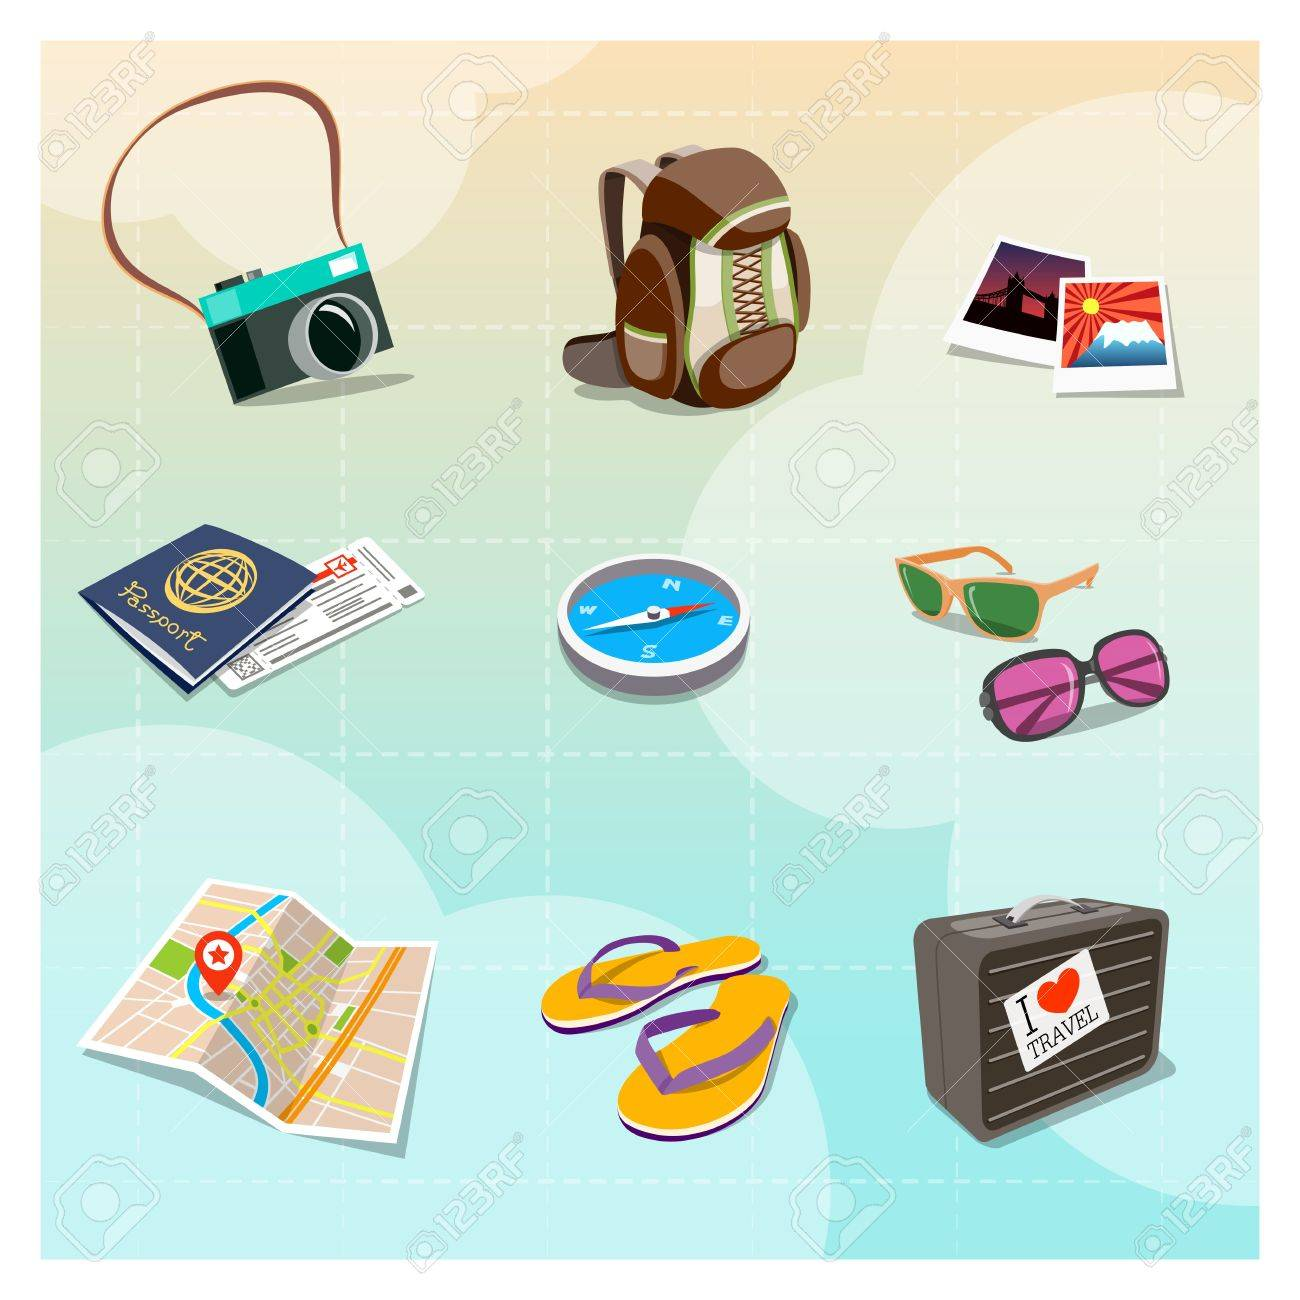 Travel clipart free images 7 - Cliparting.com